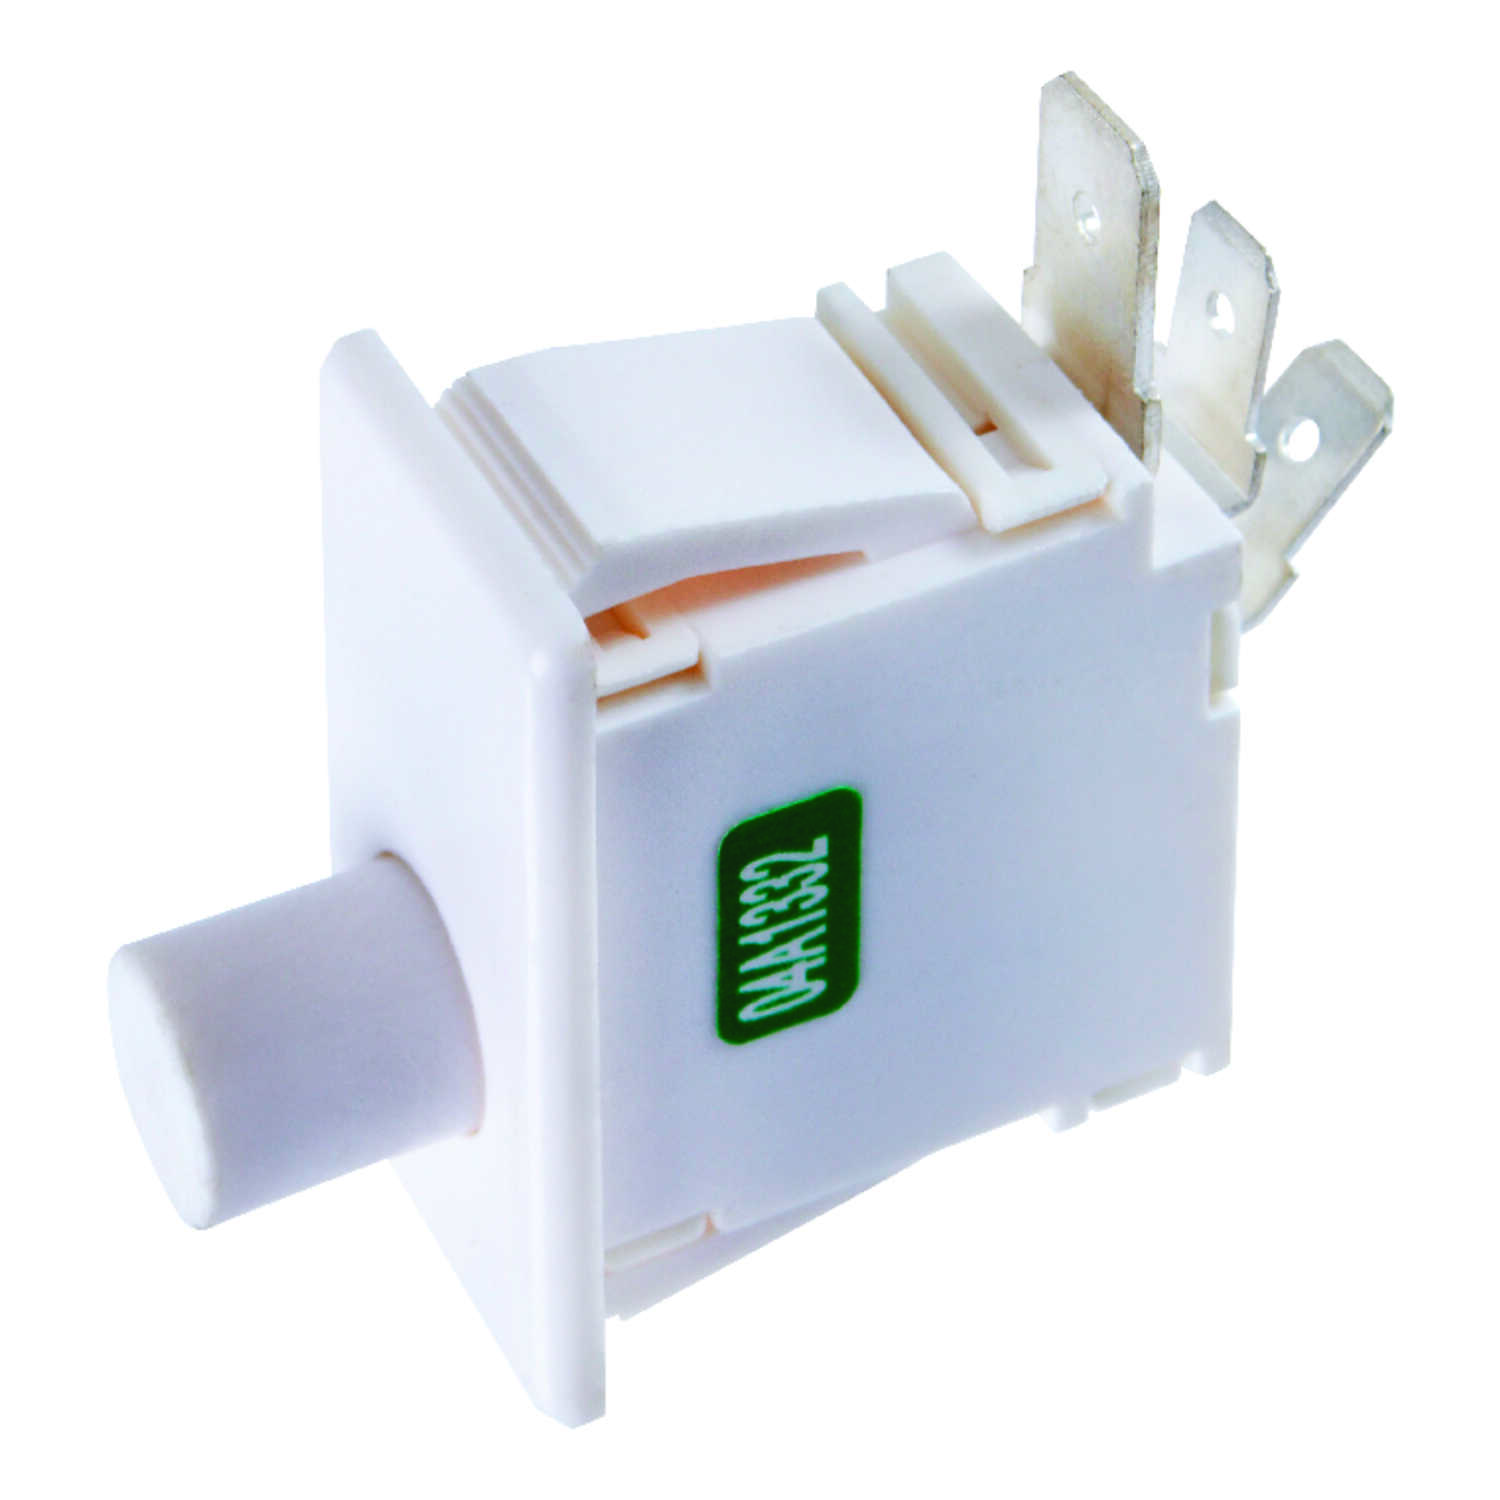 Jandorf  16 amps Appliance Switch  White  1  Momentary